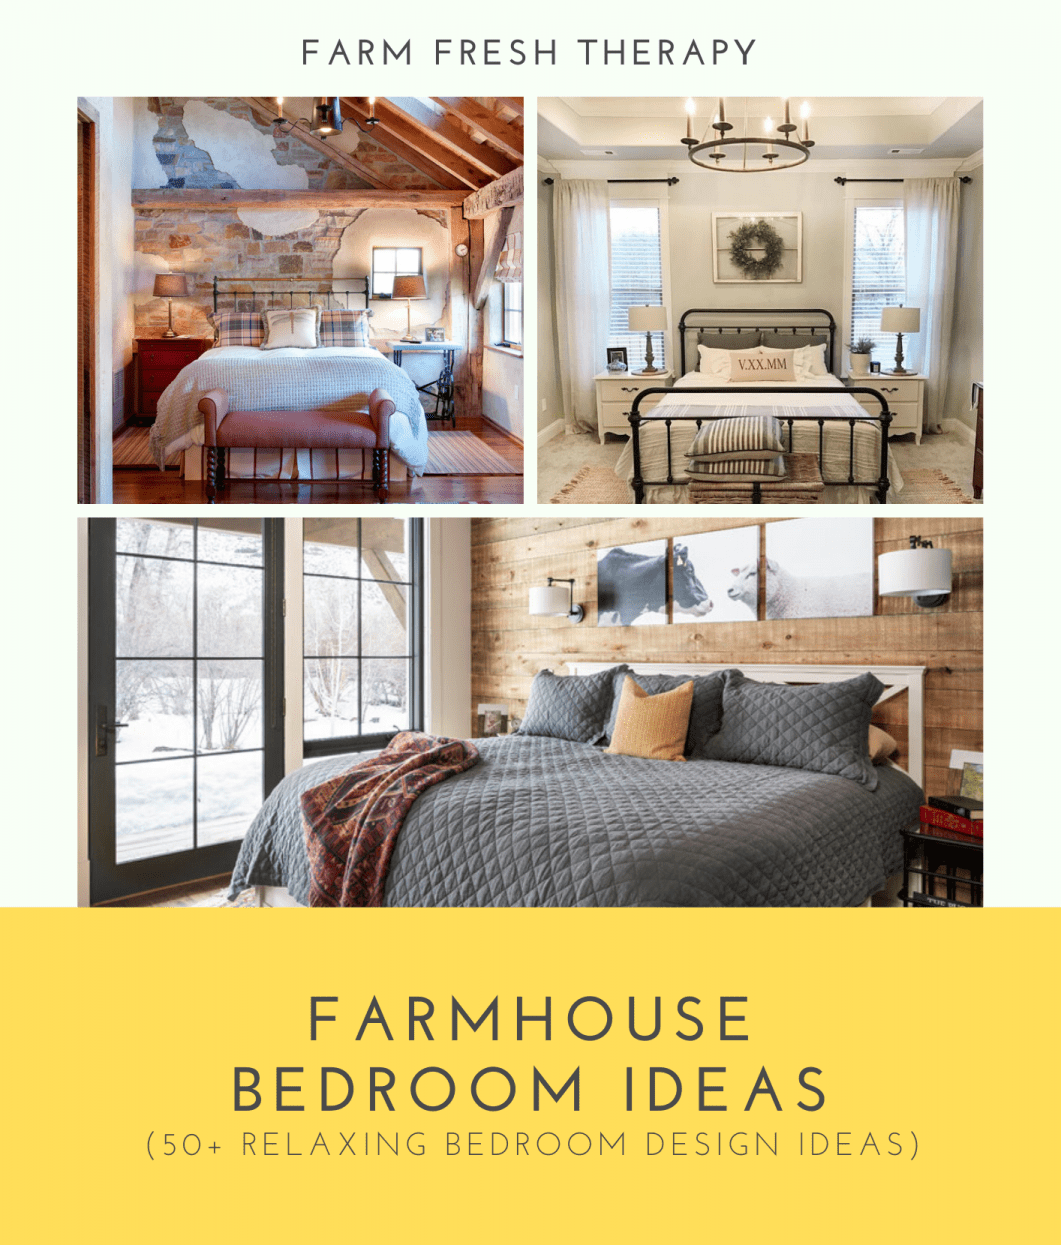 Farmhouse bedroom designs